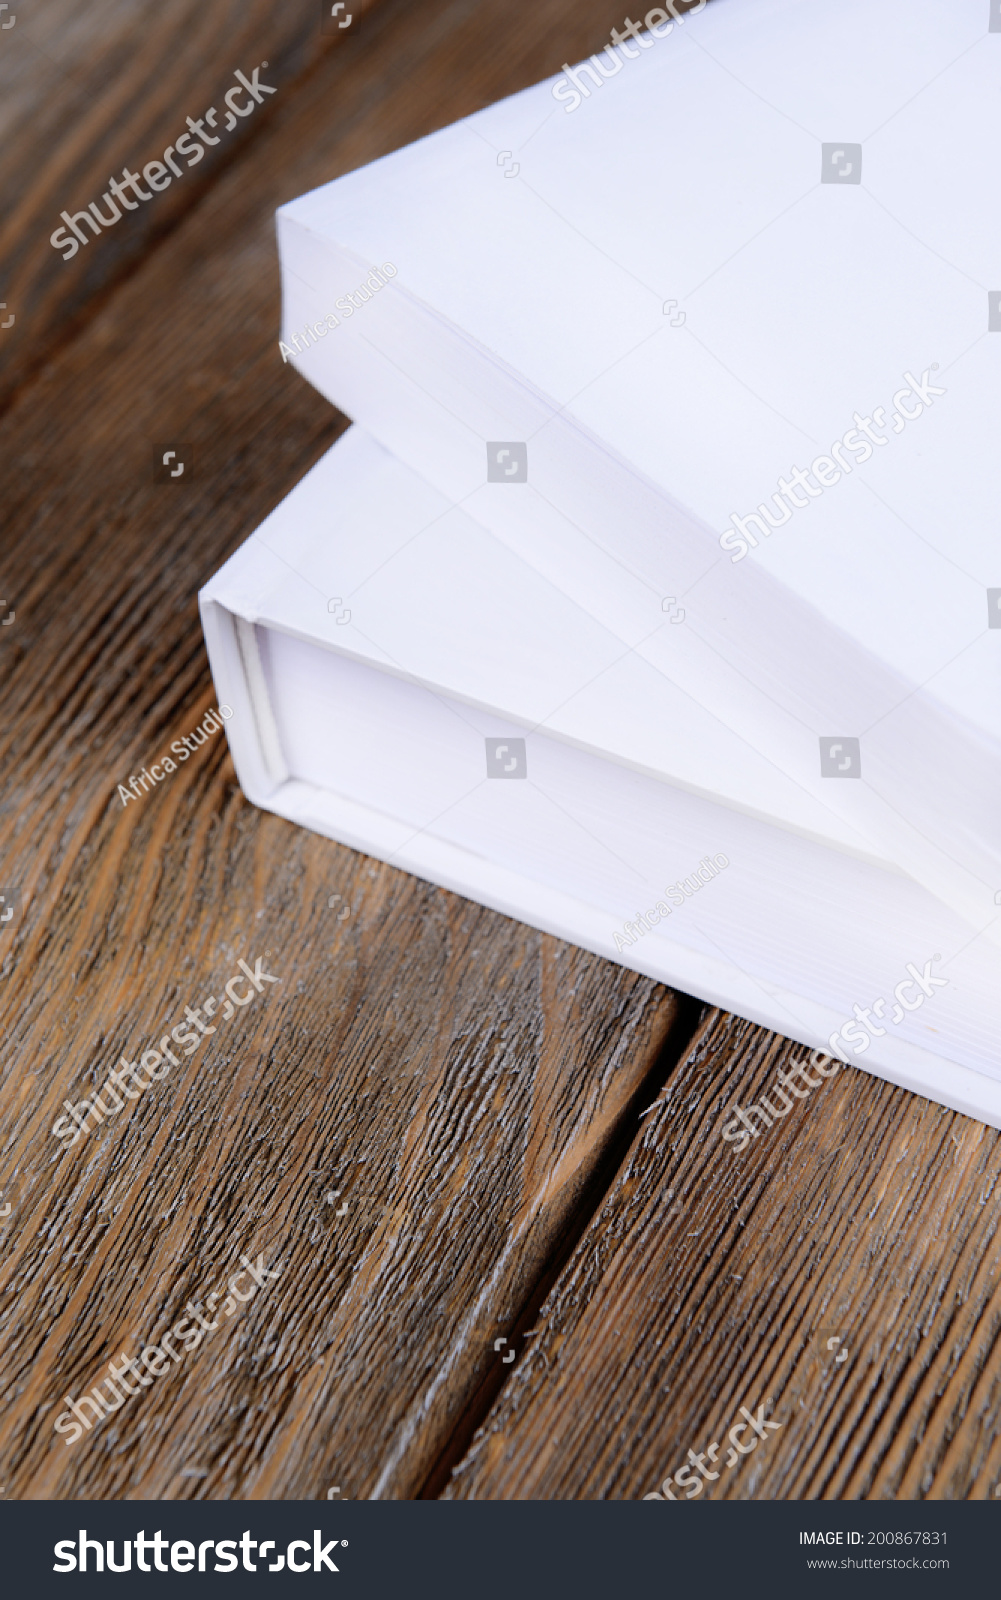 White book on wooden table closeup stock photo